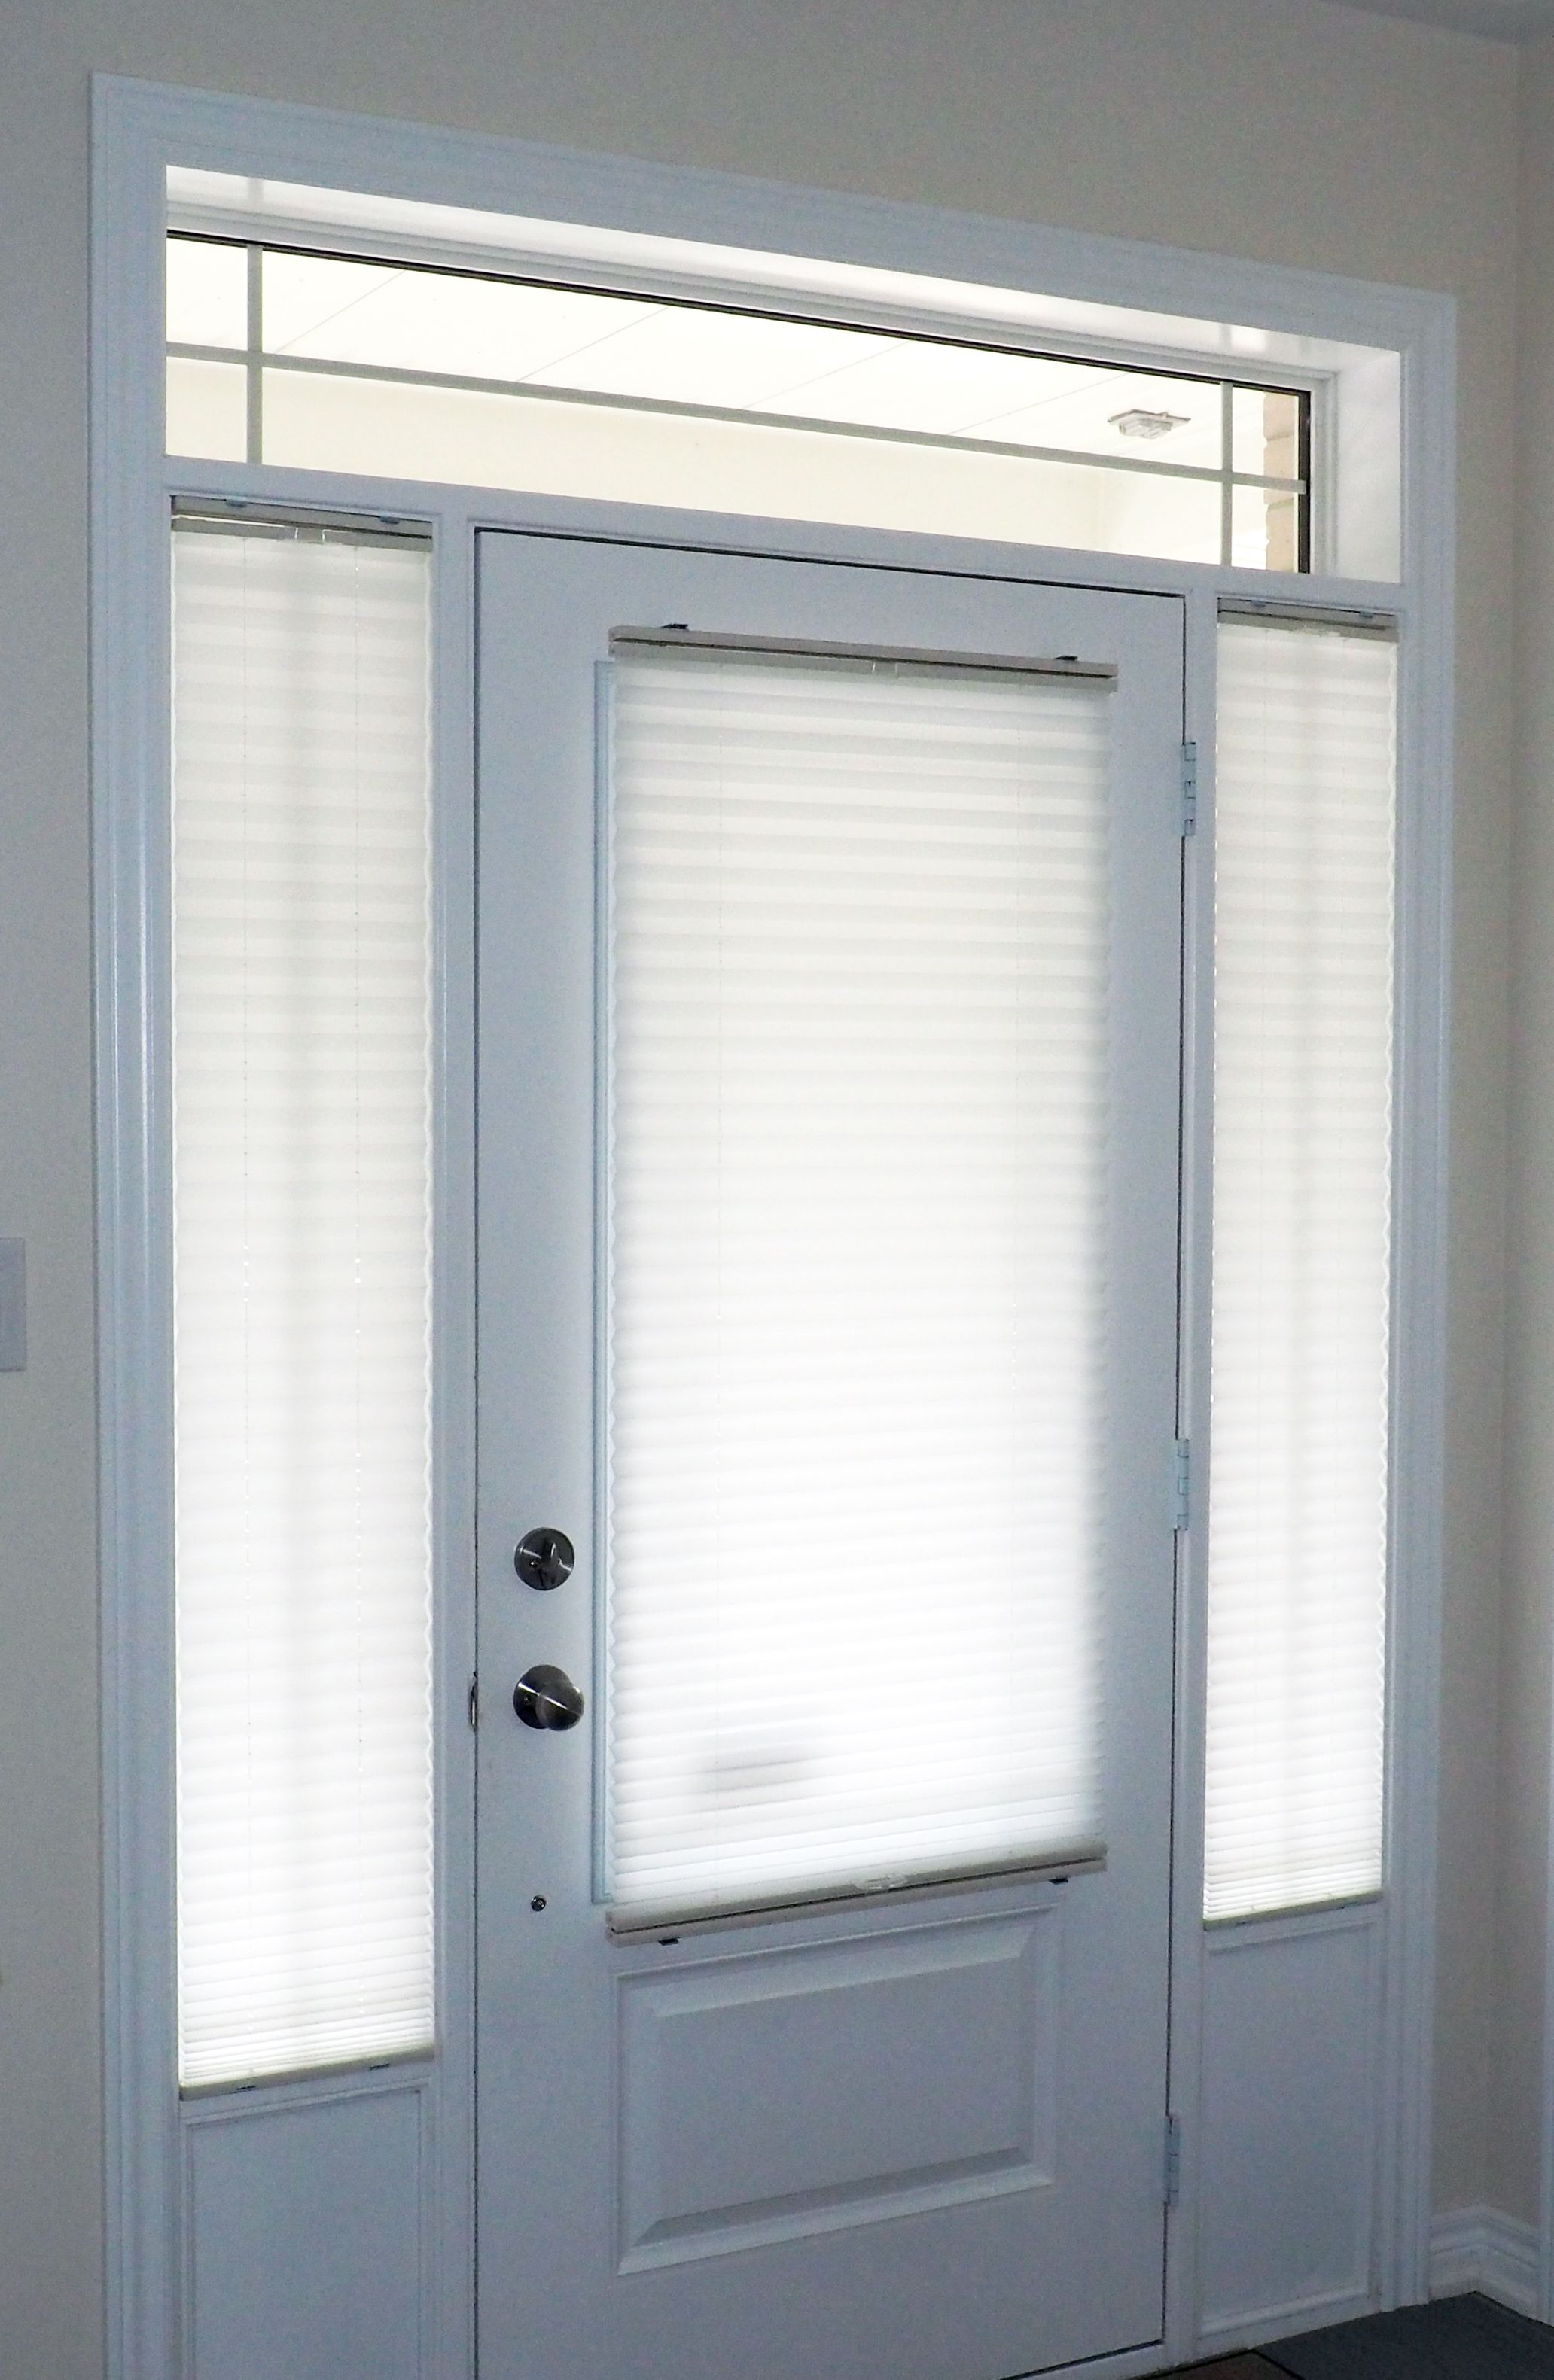 Pleated shades are an economical yet highly functional window ...